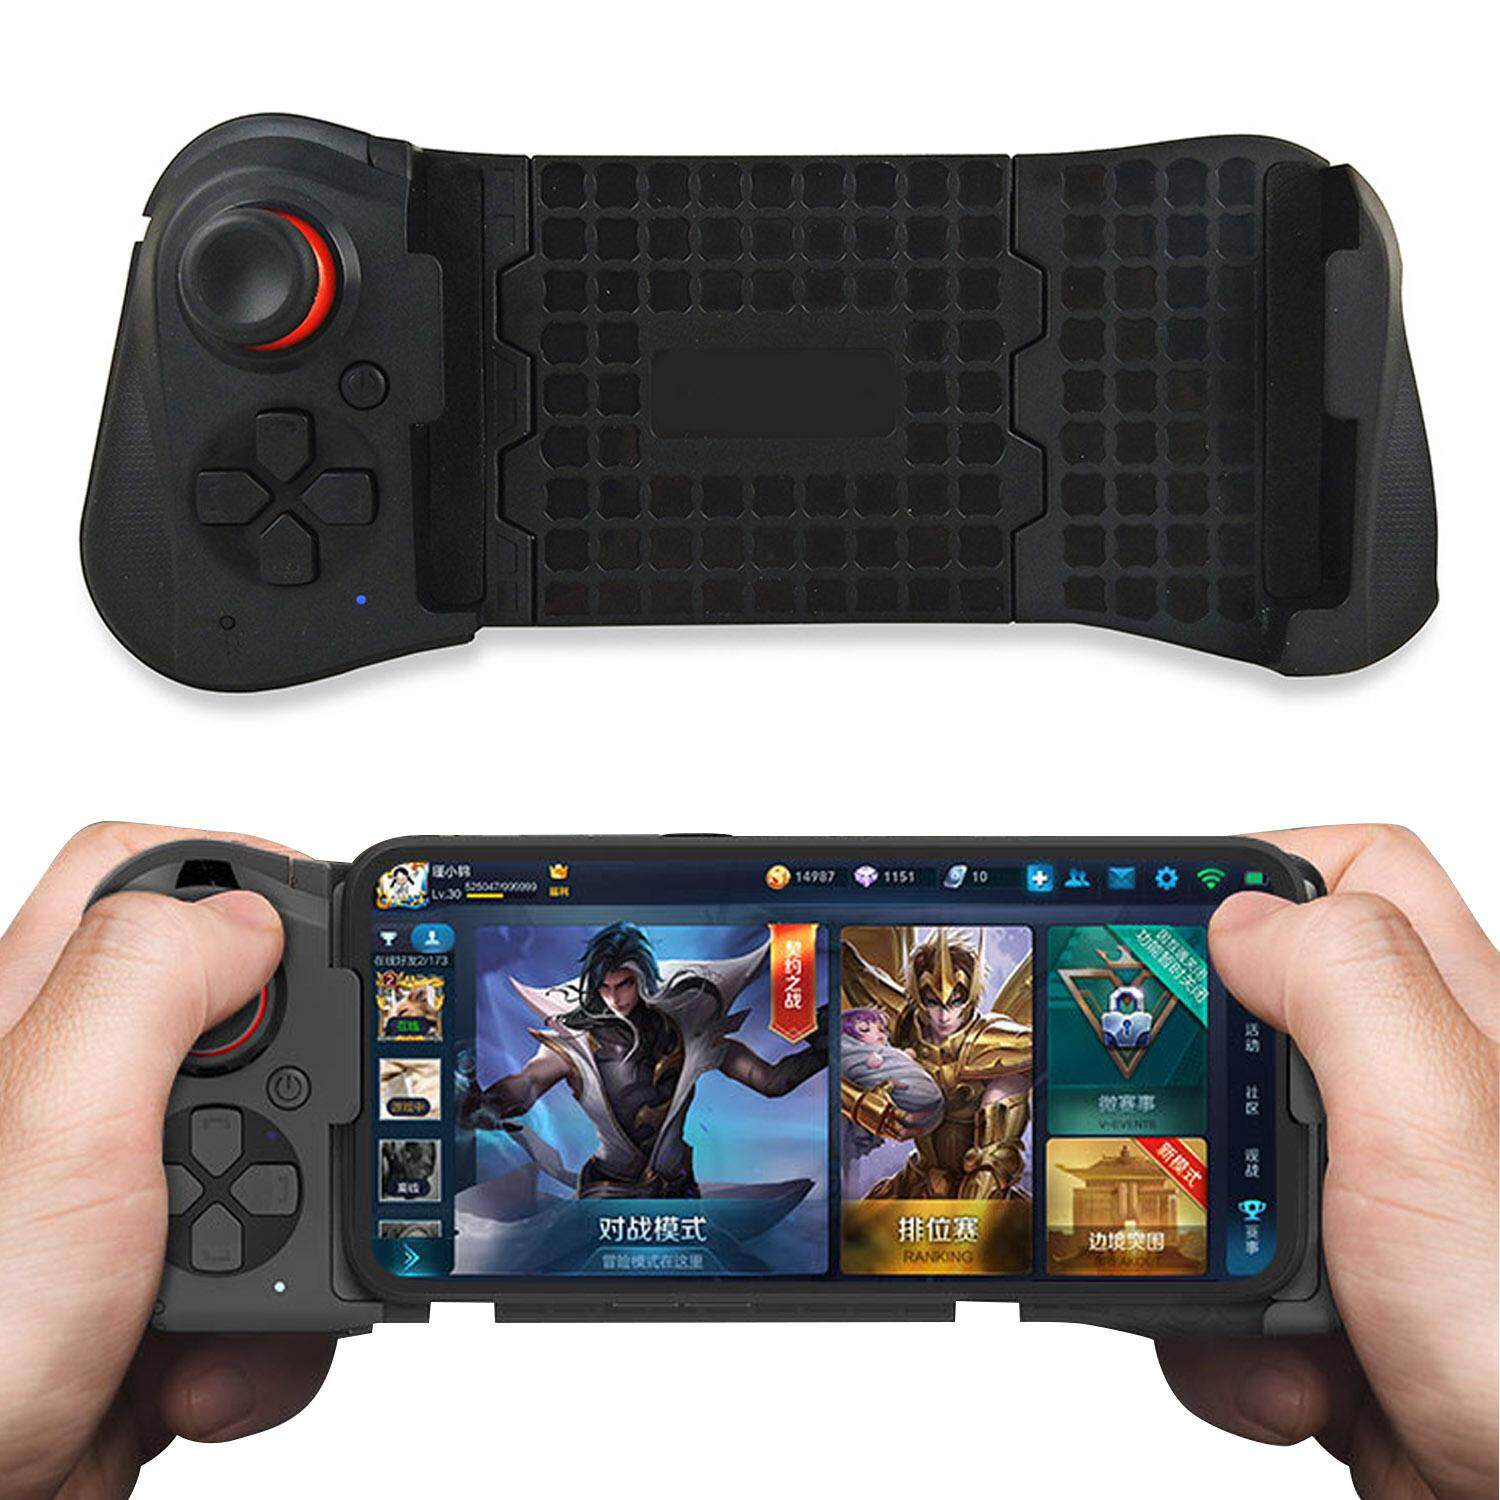 Fashion Single Hand Stretchable Wireless Bluetooth Gaming Controller Gamepad Joystick Compatible With Android Ios Iphone Huawei Samsung Xiaomi By Stoneky.